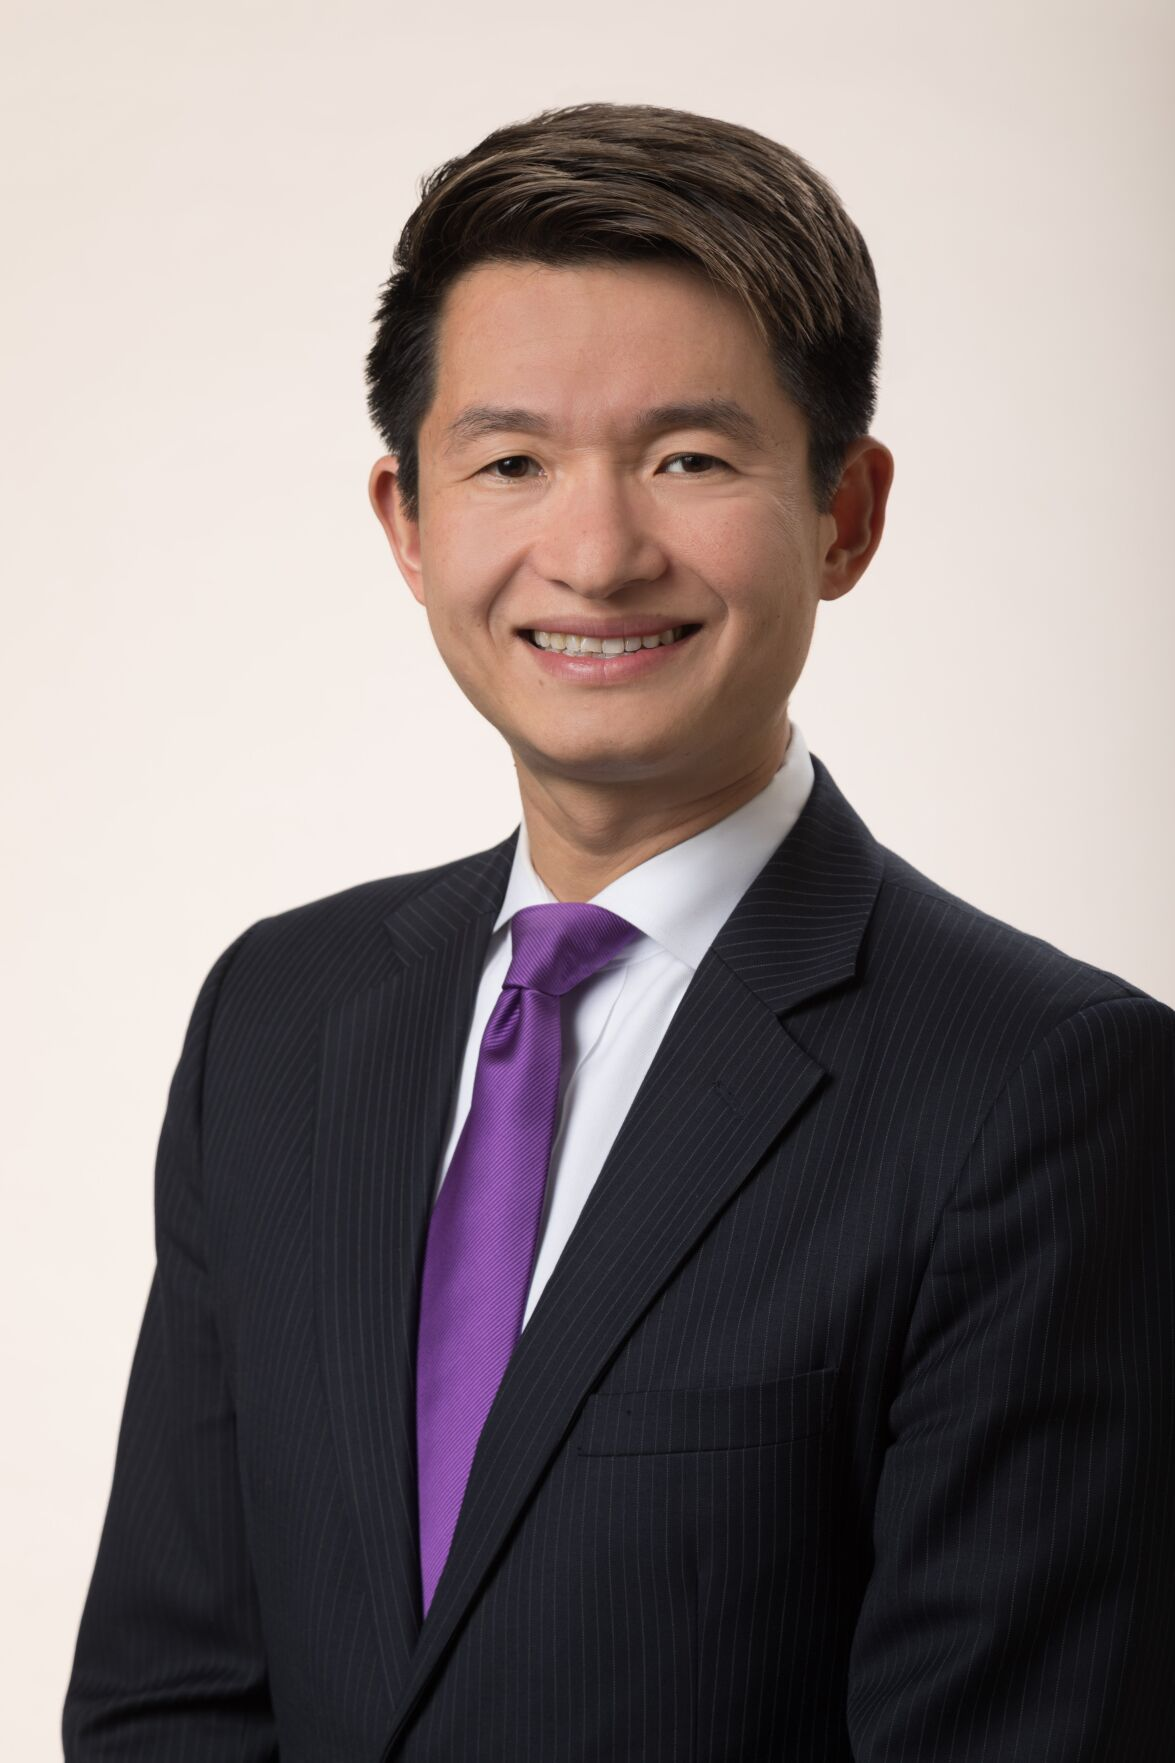 Christopher Chung, chief executive officer of the Economic Development Partnership of North Carolina